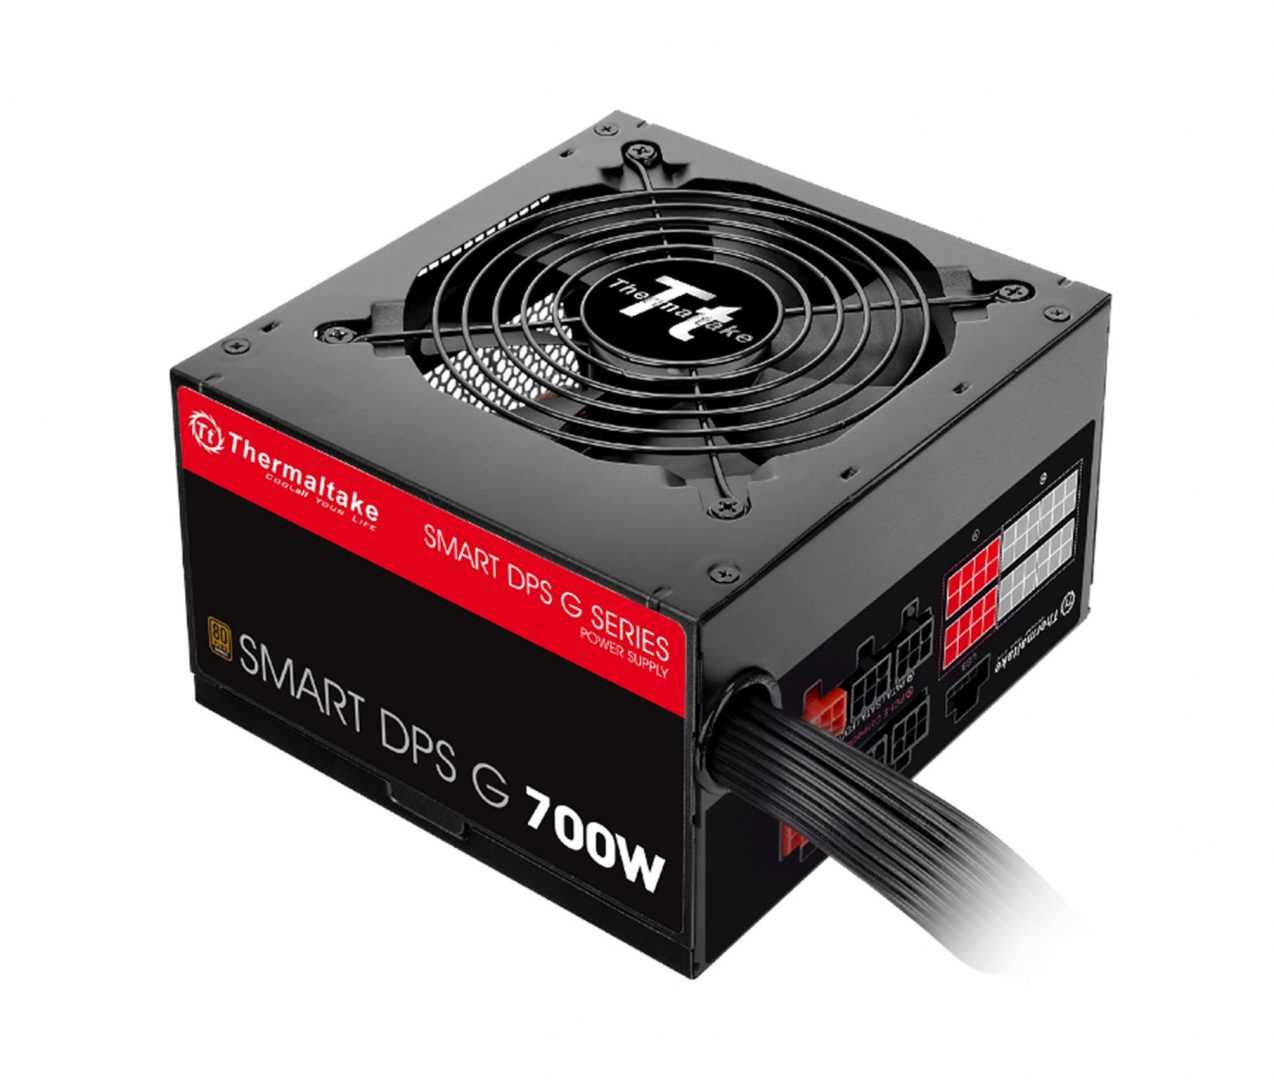 Thermaltake Smart DPS G Bronze 700W Digital Power Supply